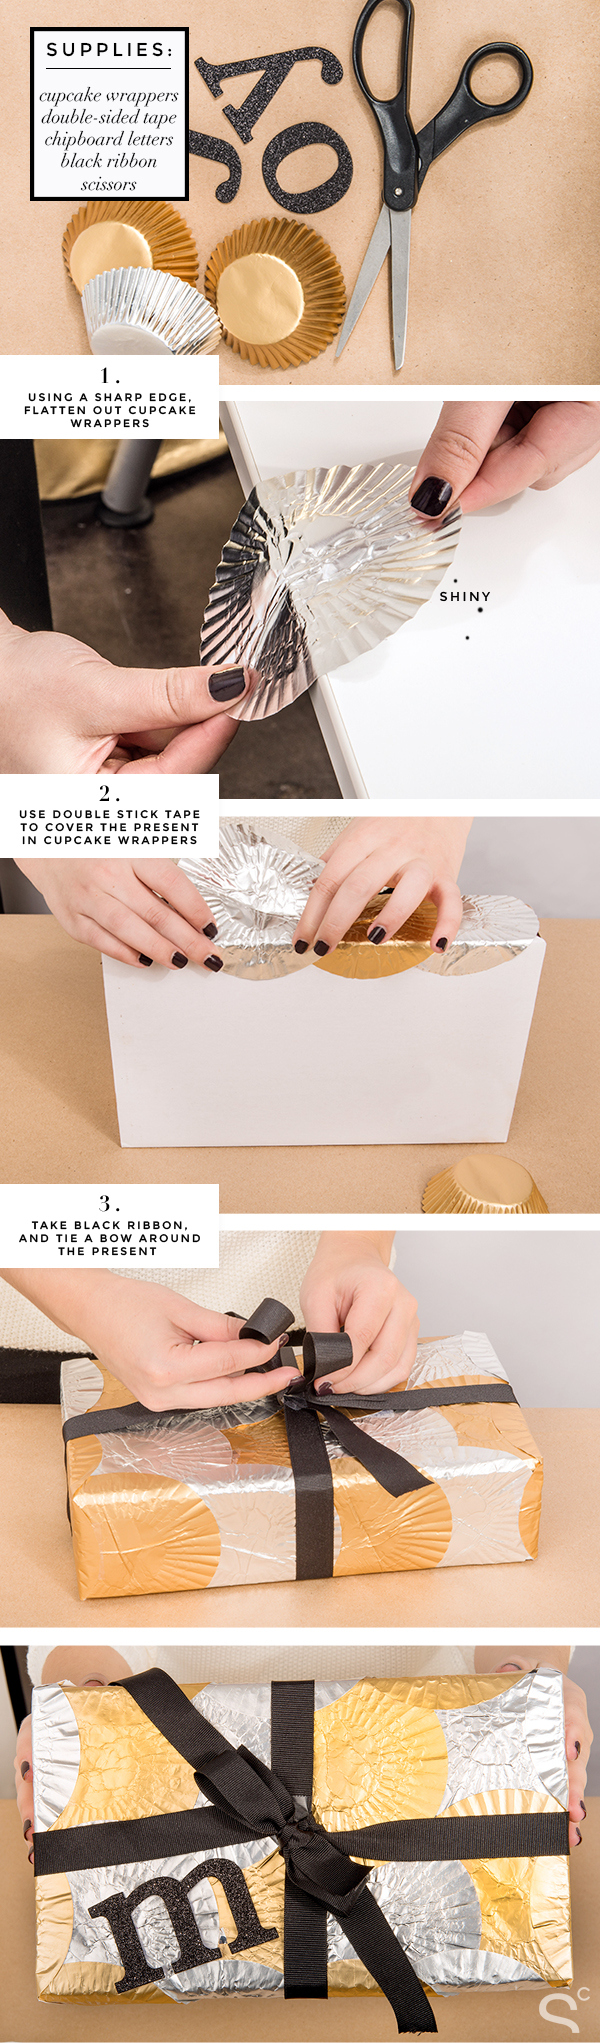 how to wrap a gift in a unique creative way